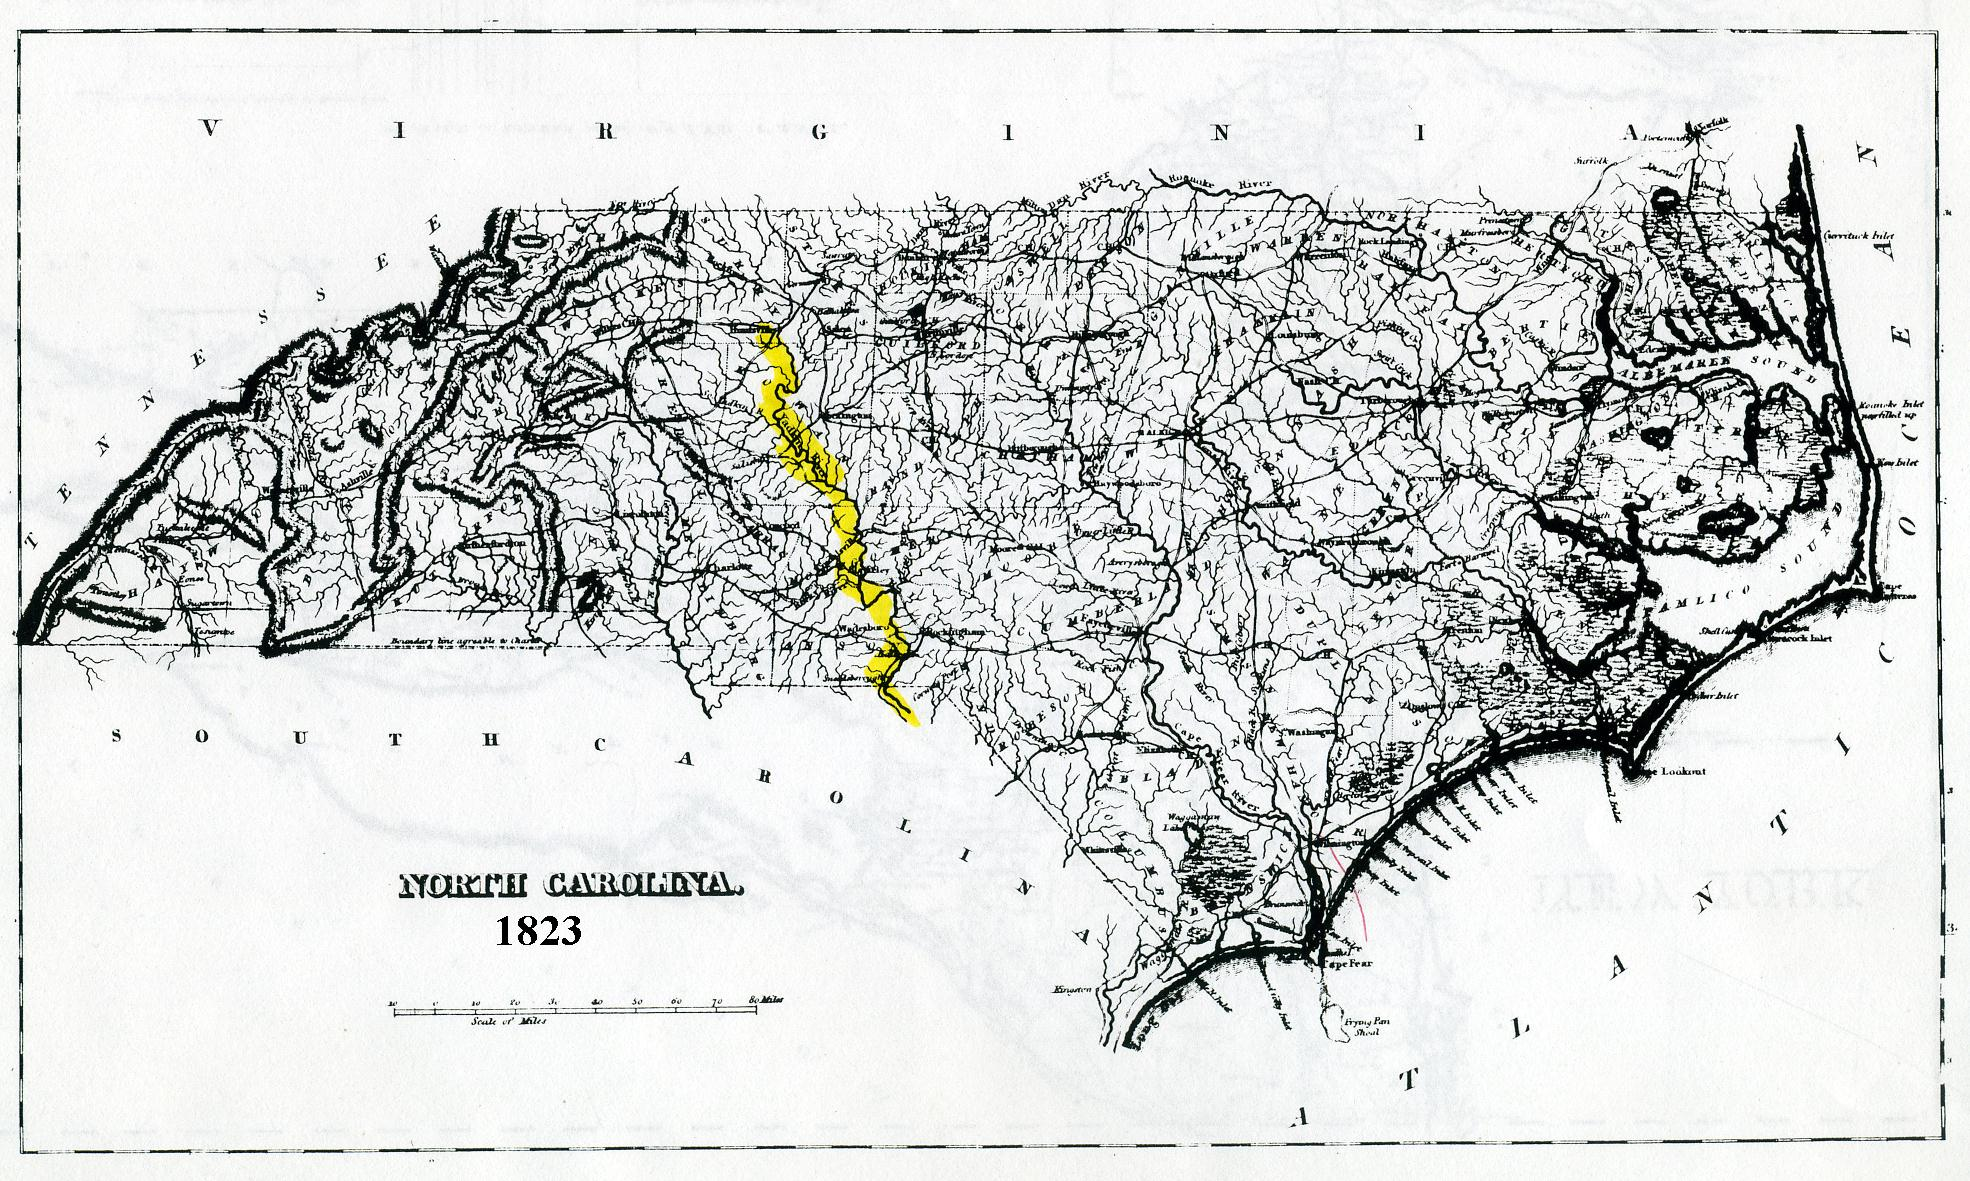 Some Early NC. Maps on map of memphis tn, map of orange co nc, map of asheville nc, map of ferguson nc, map of north carolina, map of biltmore forest nc, map of ogden nc, map of atlanta, map of hog island nc, map of raleigh nc, map of moyock nc, map of charlottesville nc, map of saxapahaw nc, map of clarksville nc, map of salemburg nc, map of greenville nc, map of bunnlevel nc, map of columbus ga, map of charlotte nc, map of griffin nc,